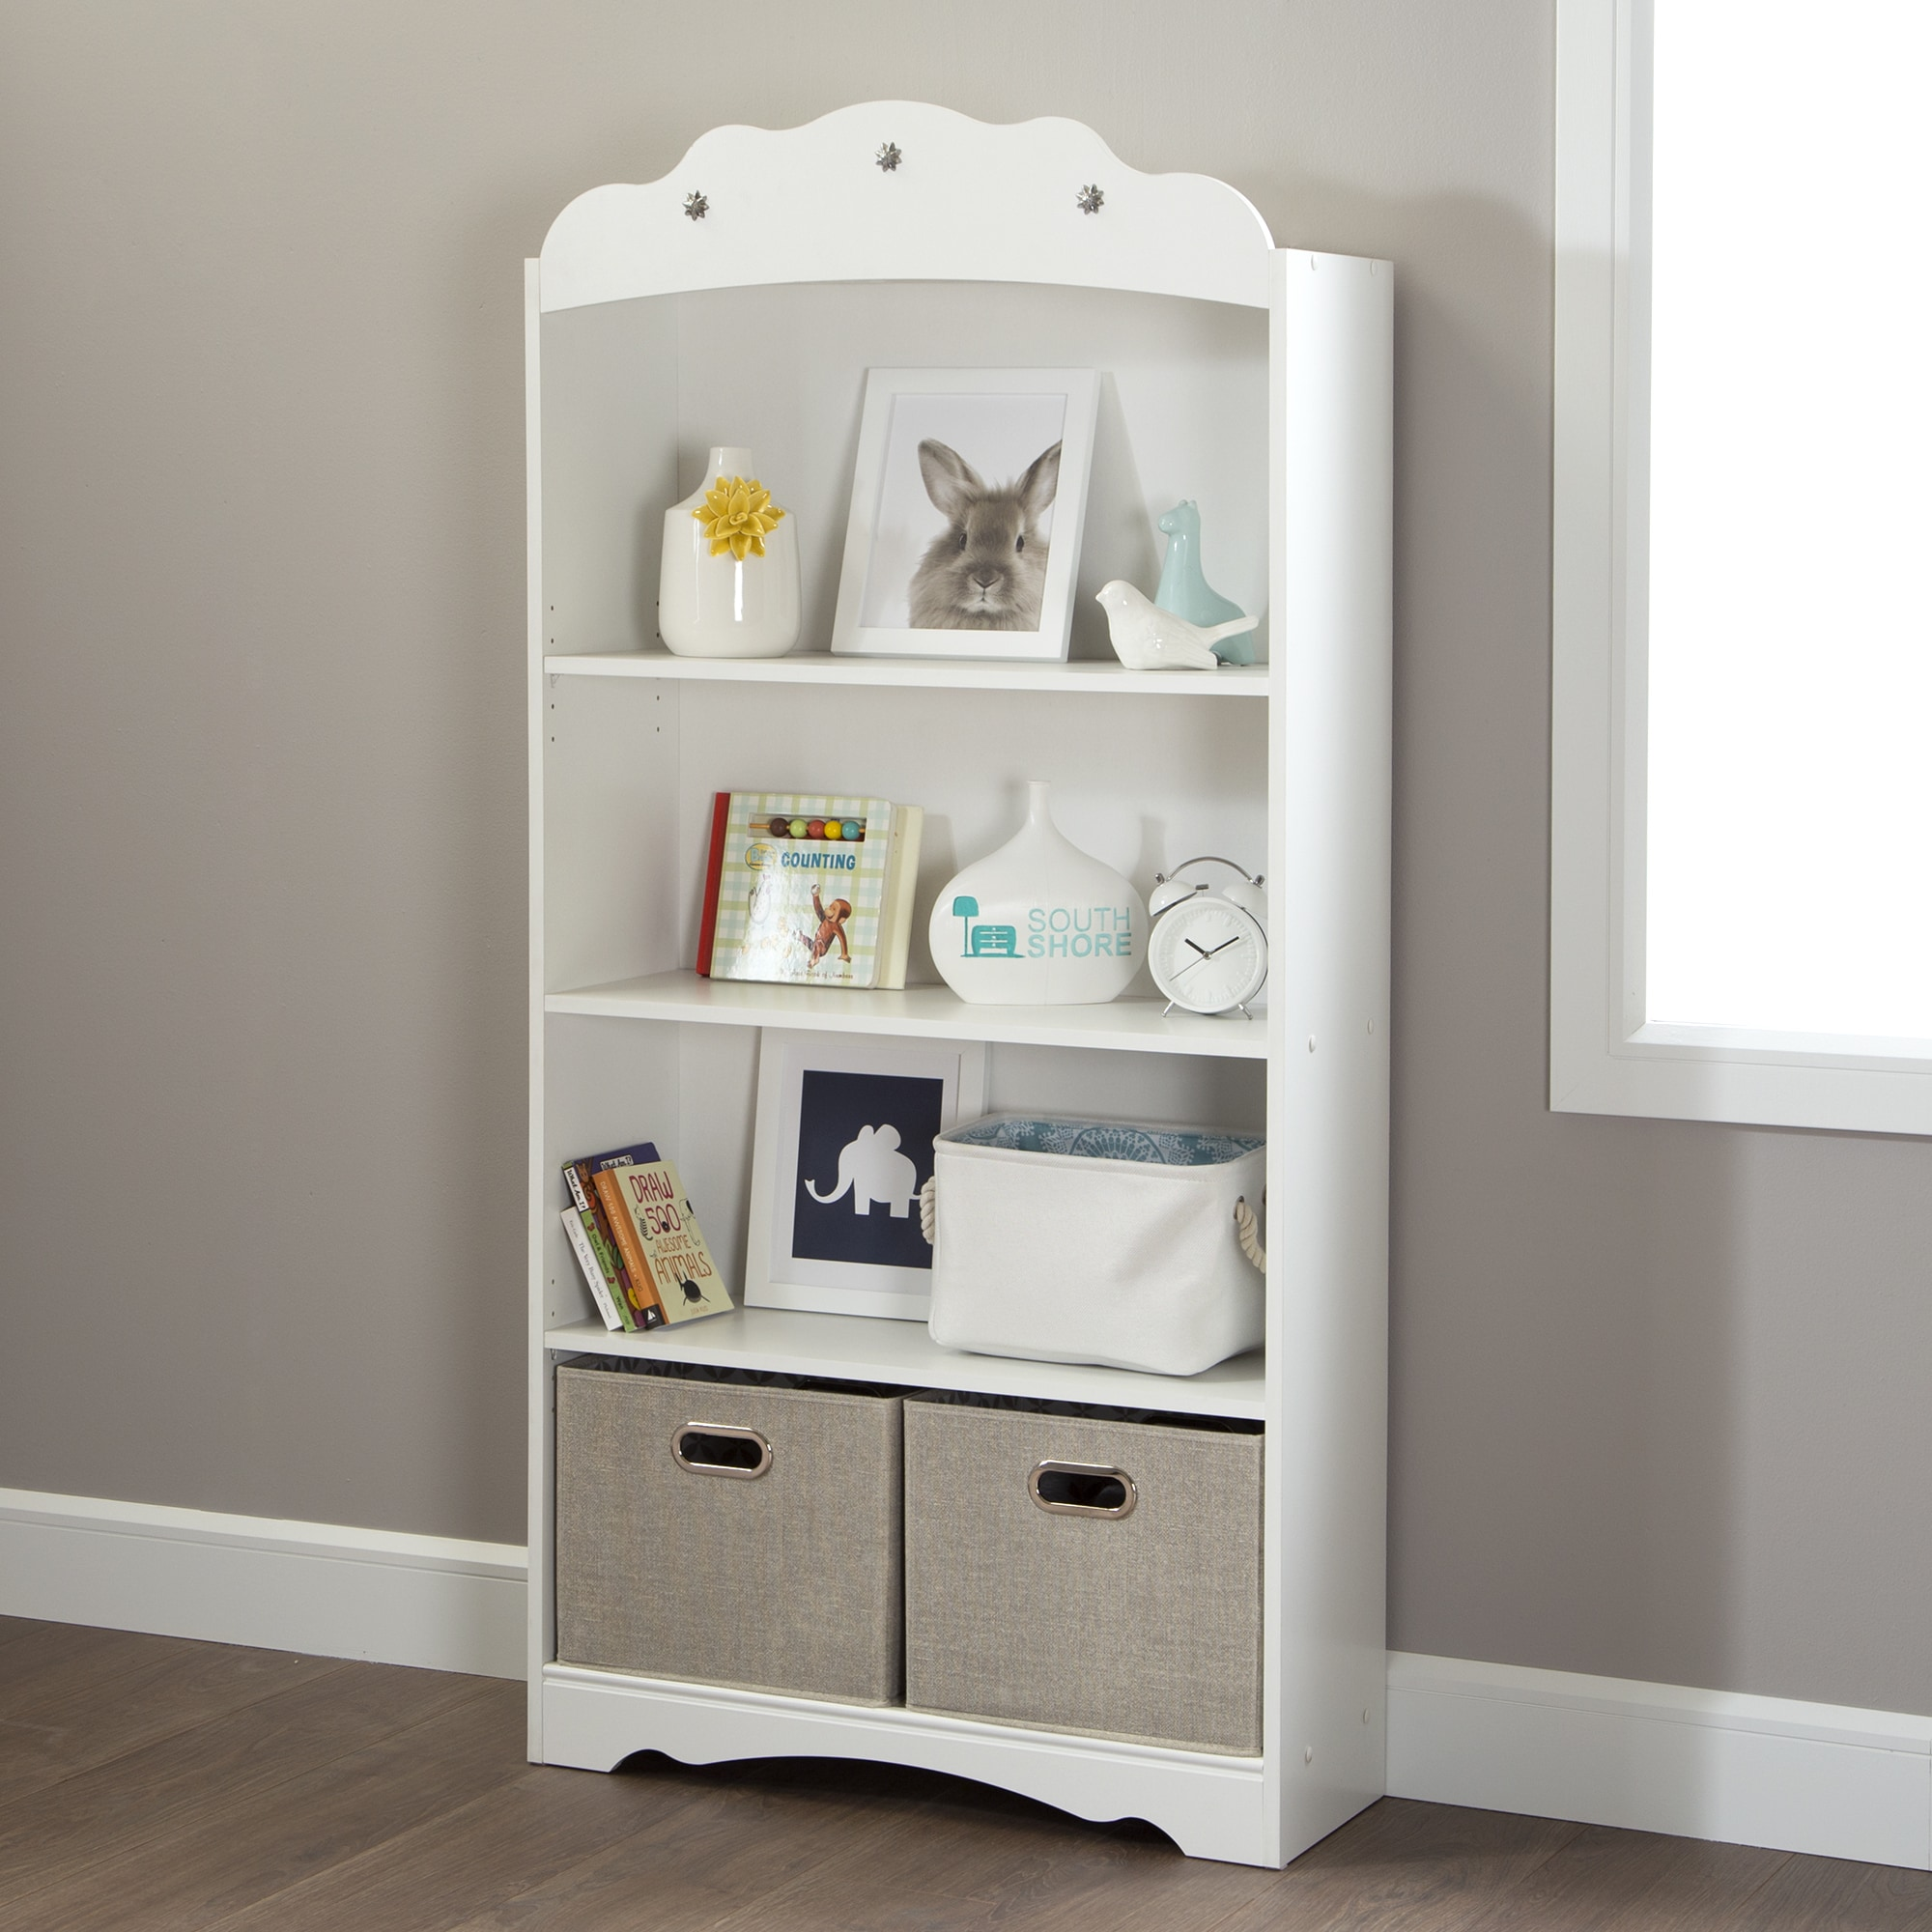 room south friday collection for distressed white deep shore black sale with bookcases furniture living wooden bookcase low bookshelf bookshelves small shelf doors axess